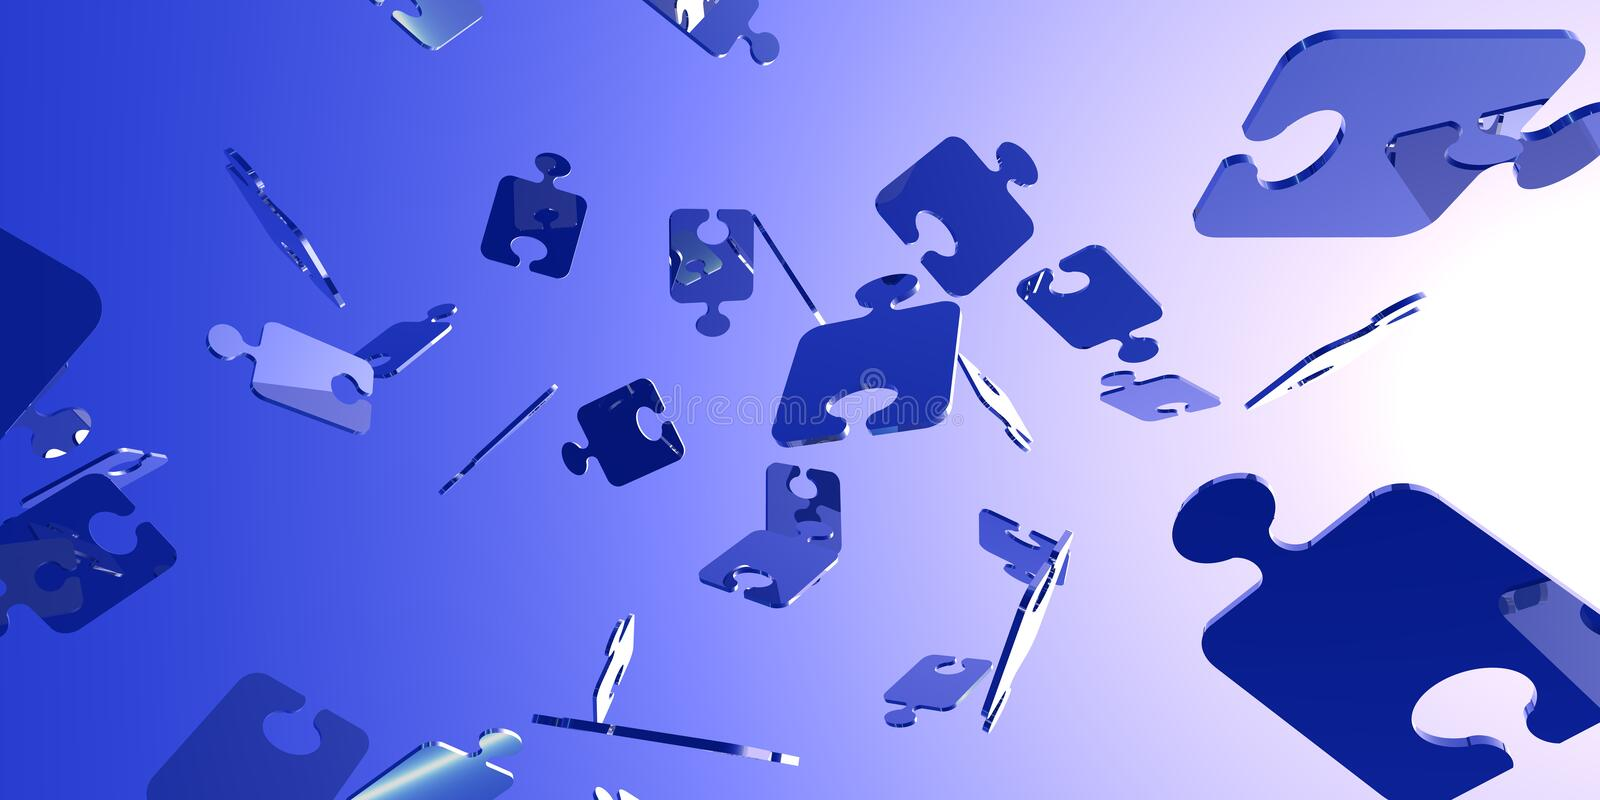 Download Puzzle Banner Stock Photography - Image: 5548472